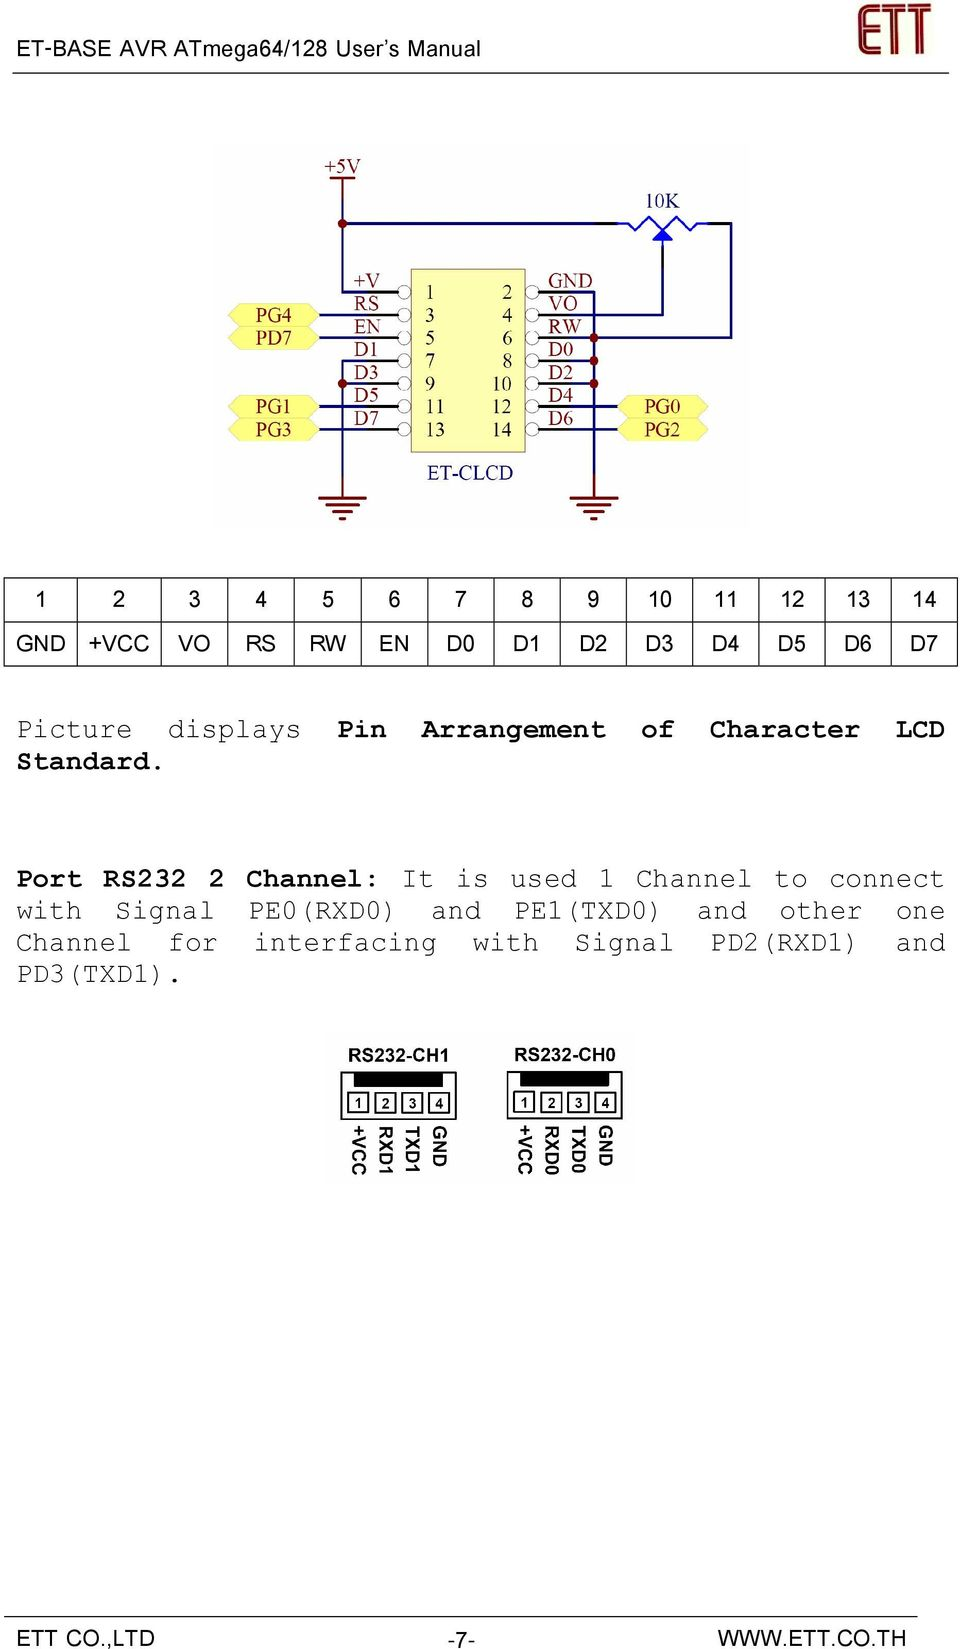 Port RS232 2 Channel: It is used 1 Channel to connect with Signal PE0(RXD0) and